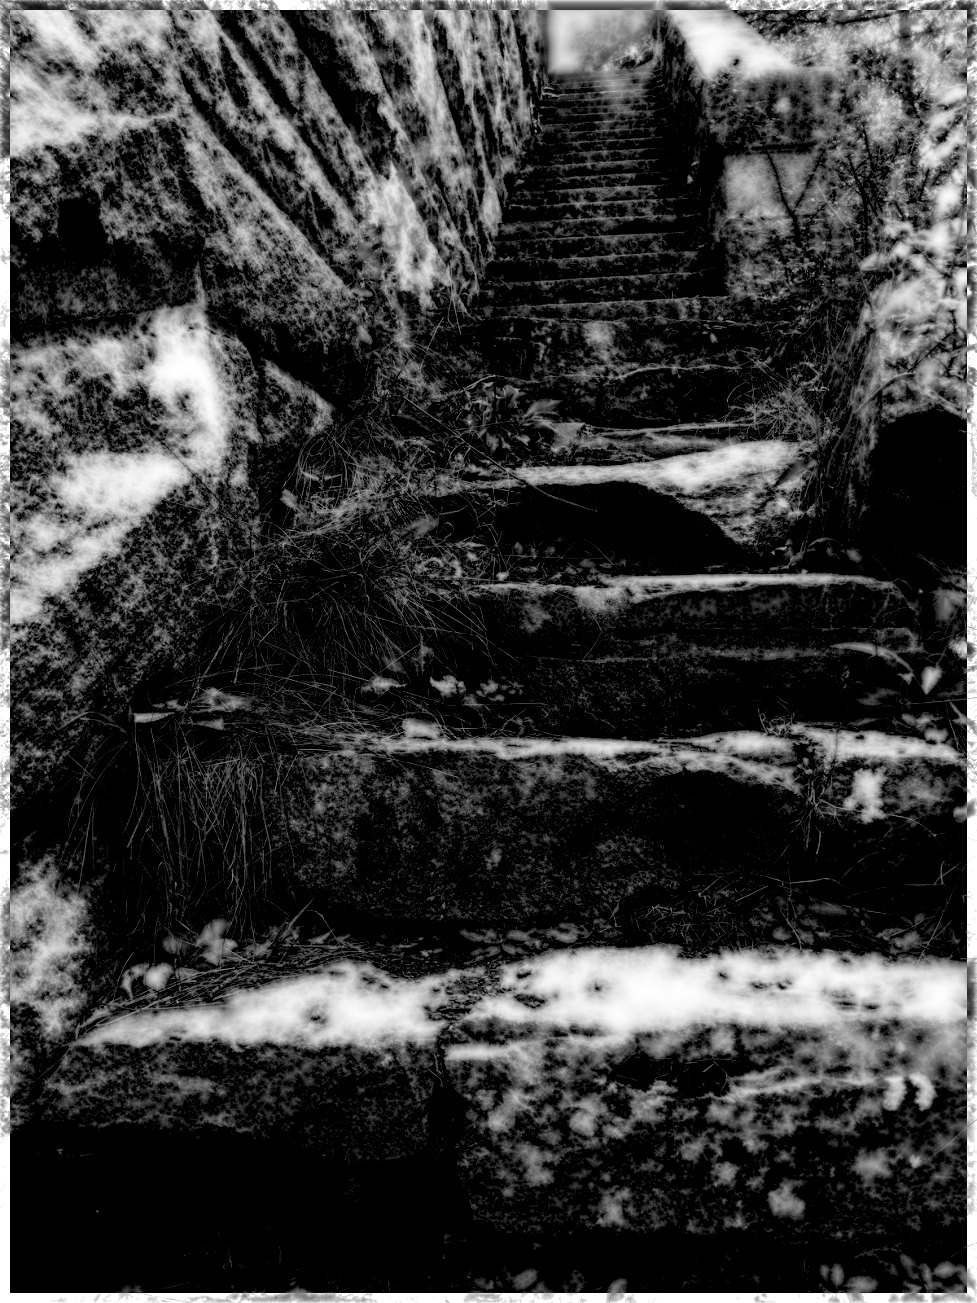 The Stairs, by Mat Tarbox